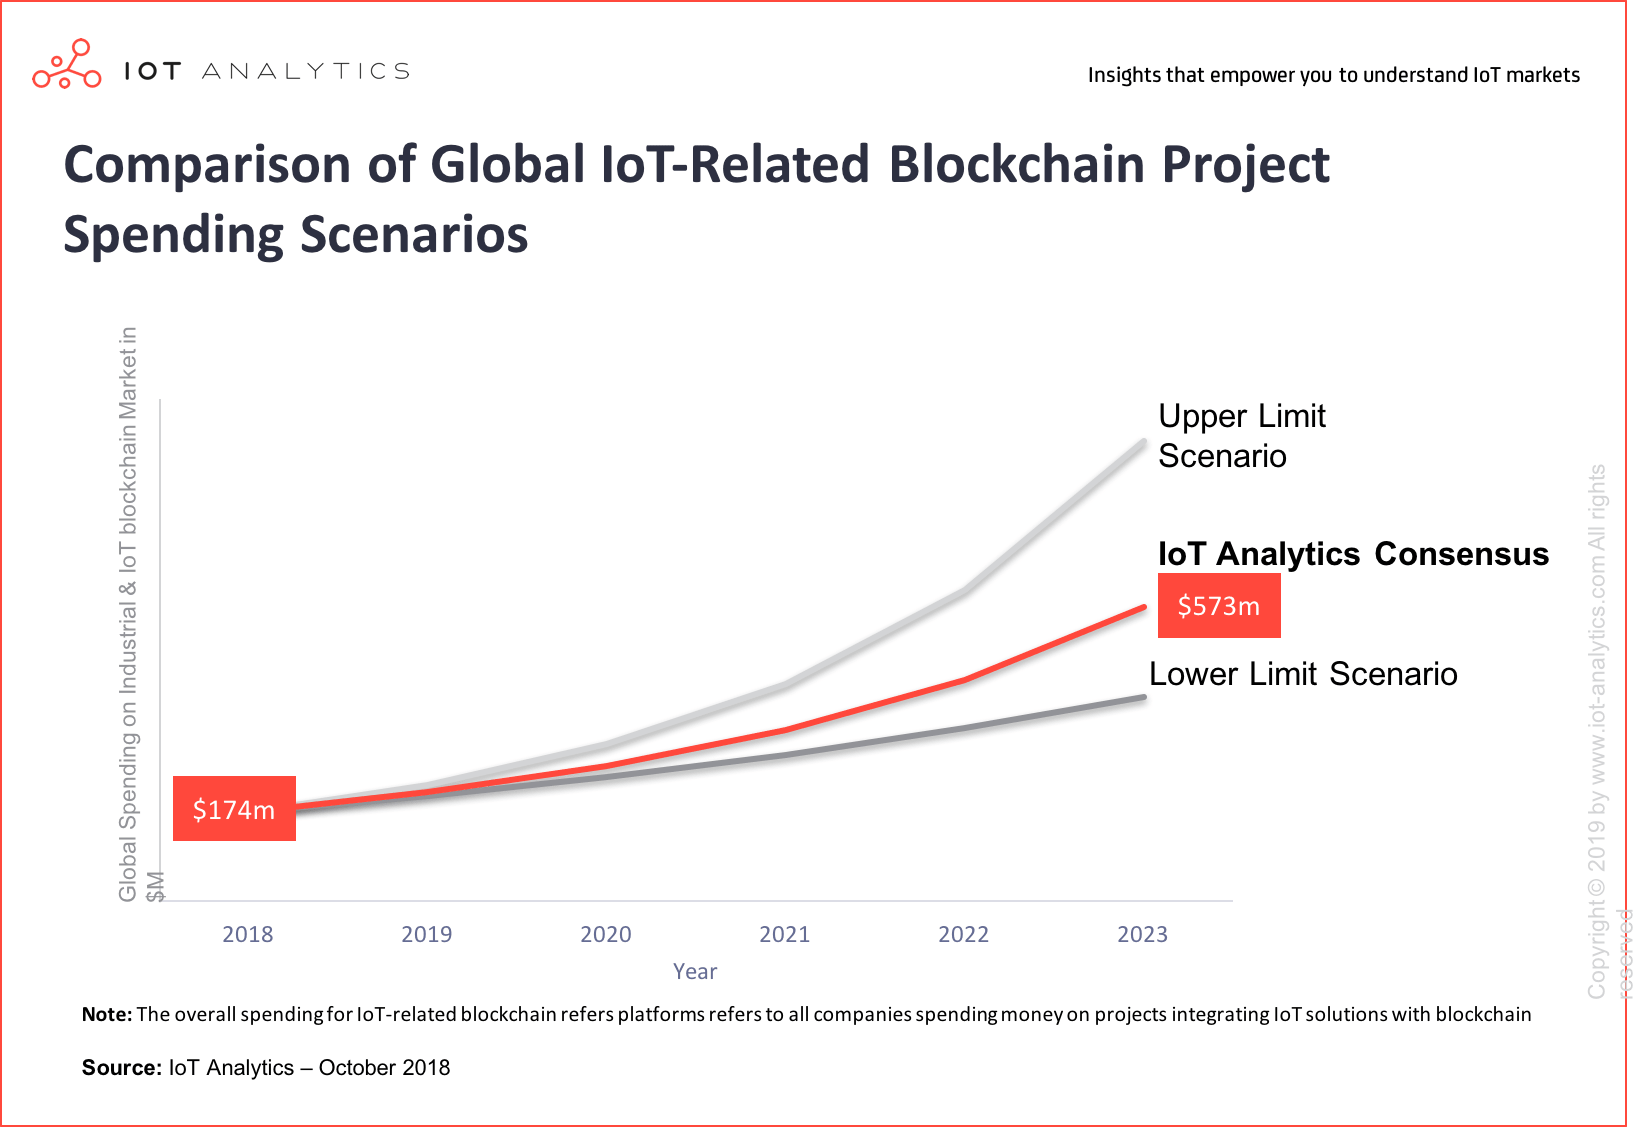 Industrial Blockchain - Comparison of Global IoT-Related Blockchain Project Spending Scenarios